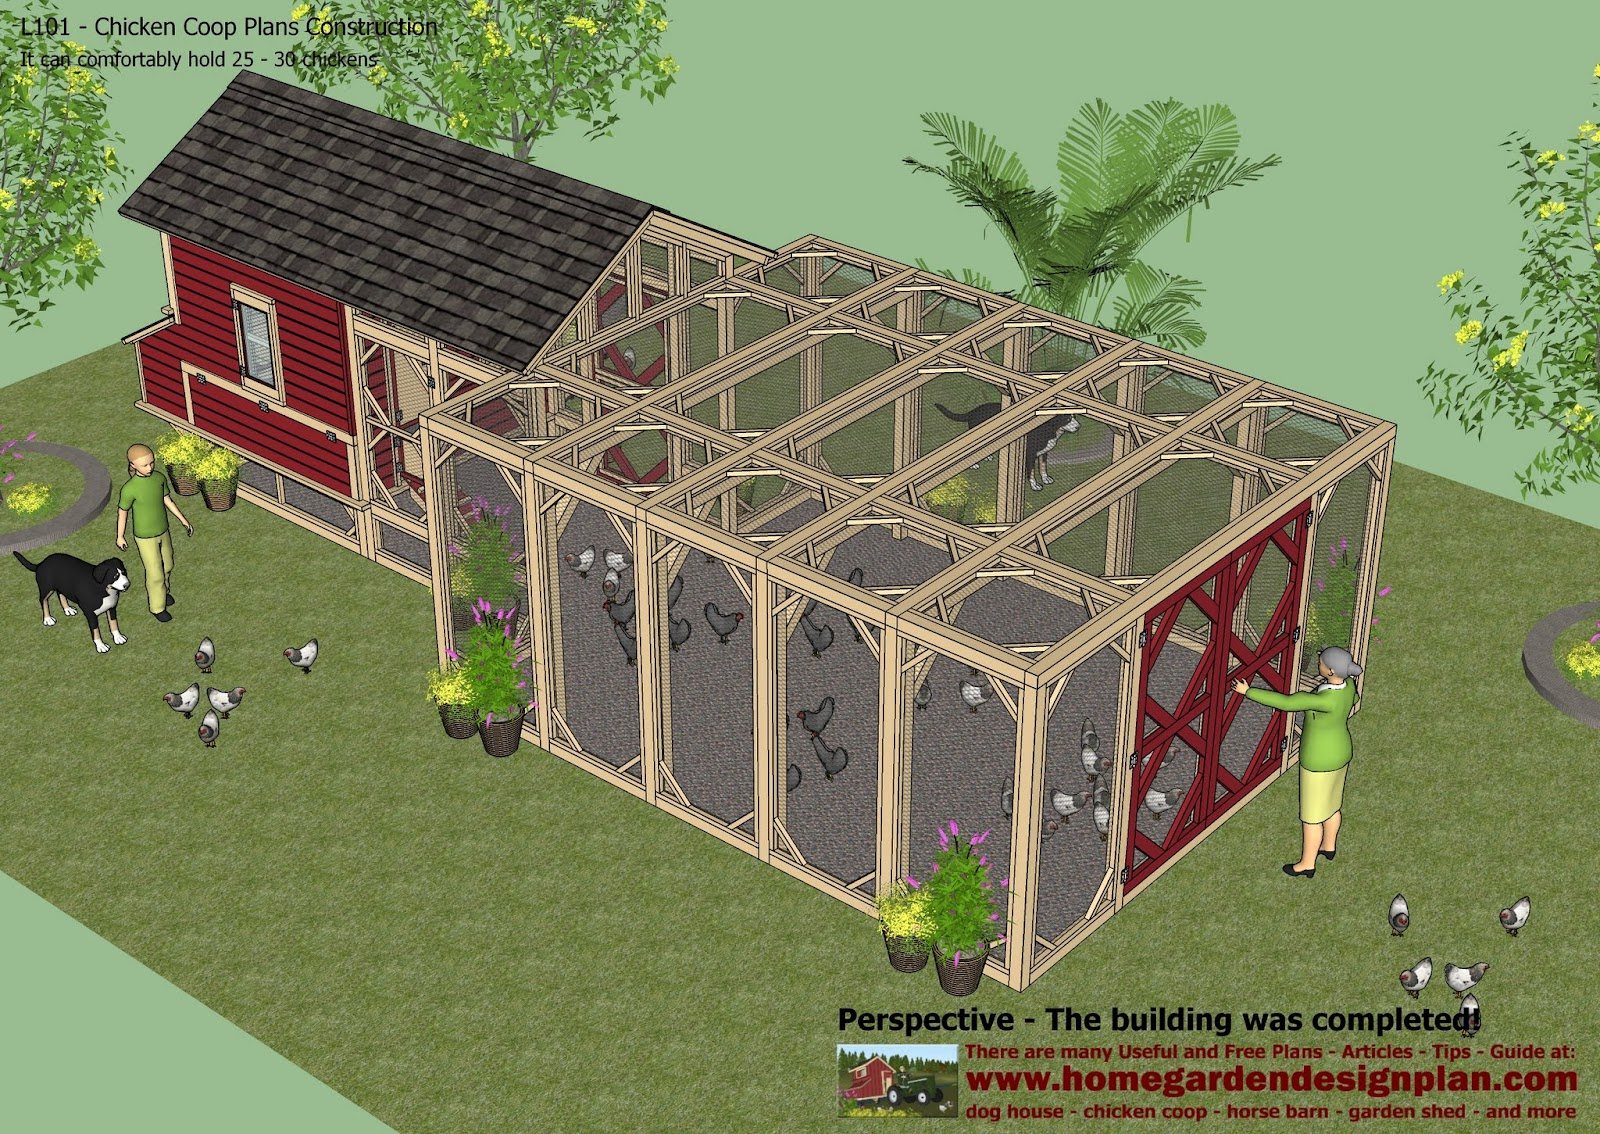 Hens Plans How To Build A Chicken Coop For 20